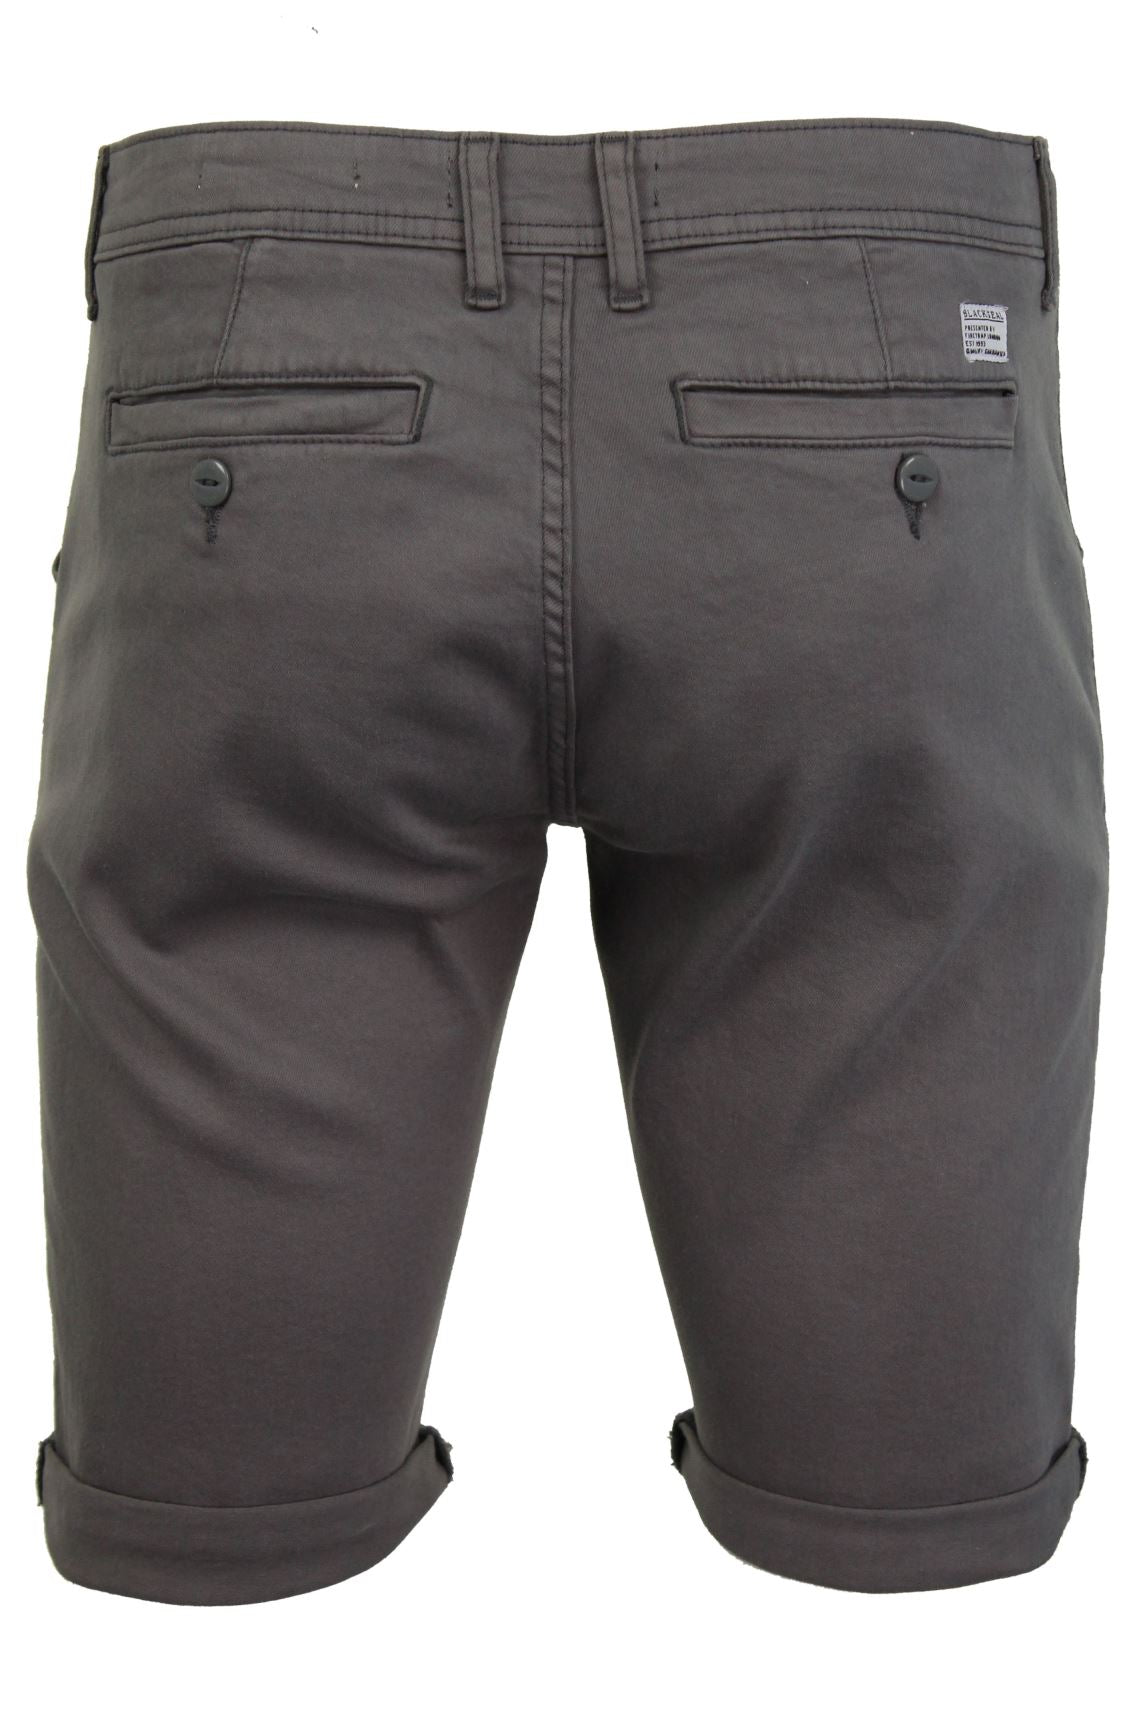 Mens Chino Shorts by Firetrap 'Solvay' Cotton Twill-3